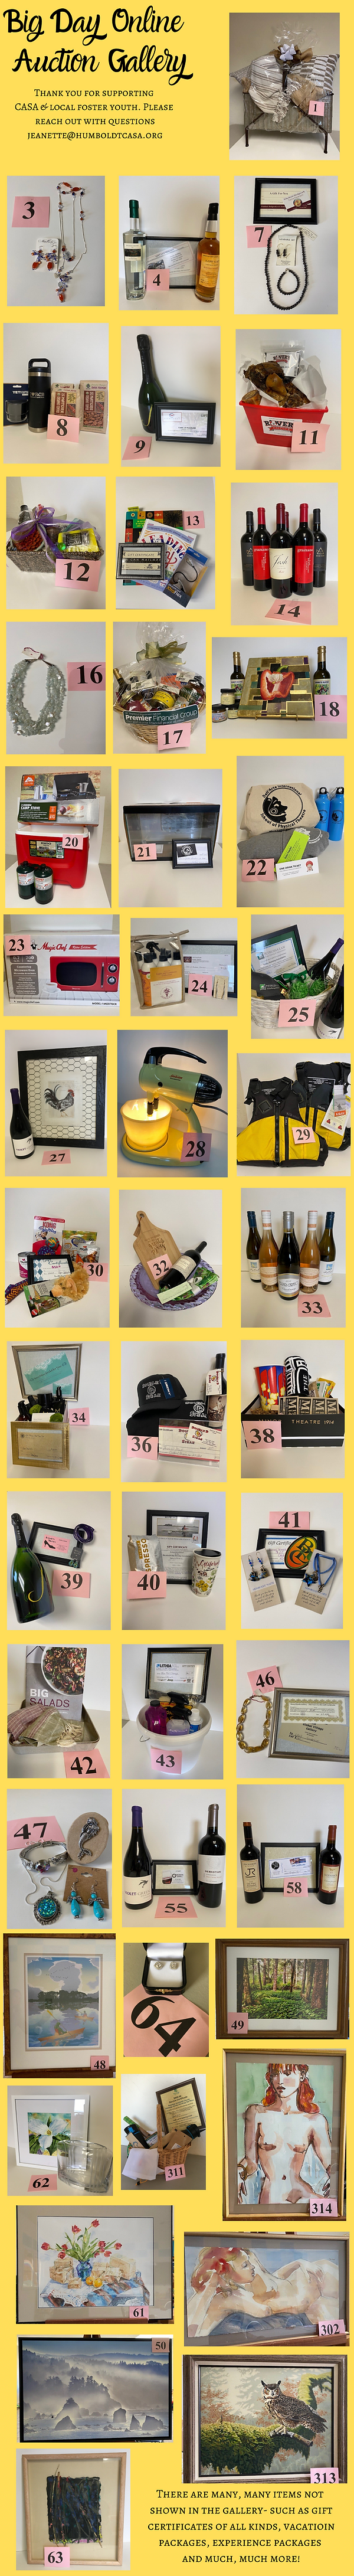 Gallery-Big Day Online Auction .png